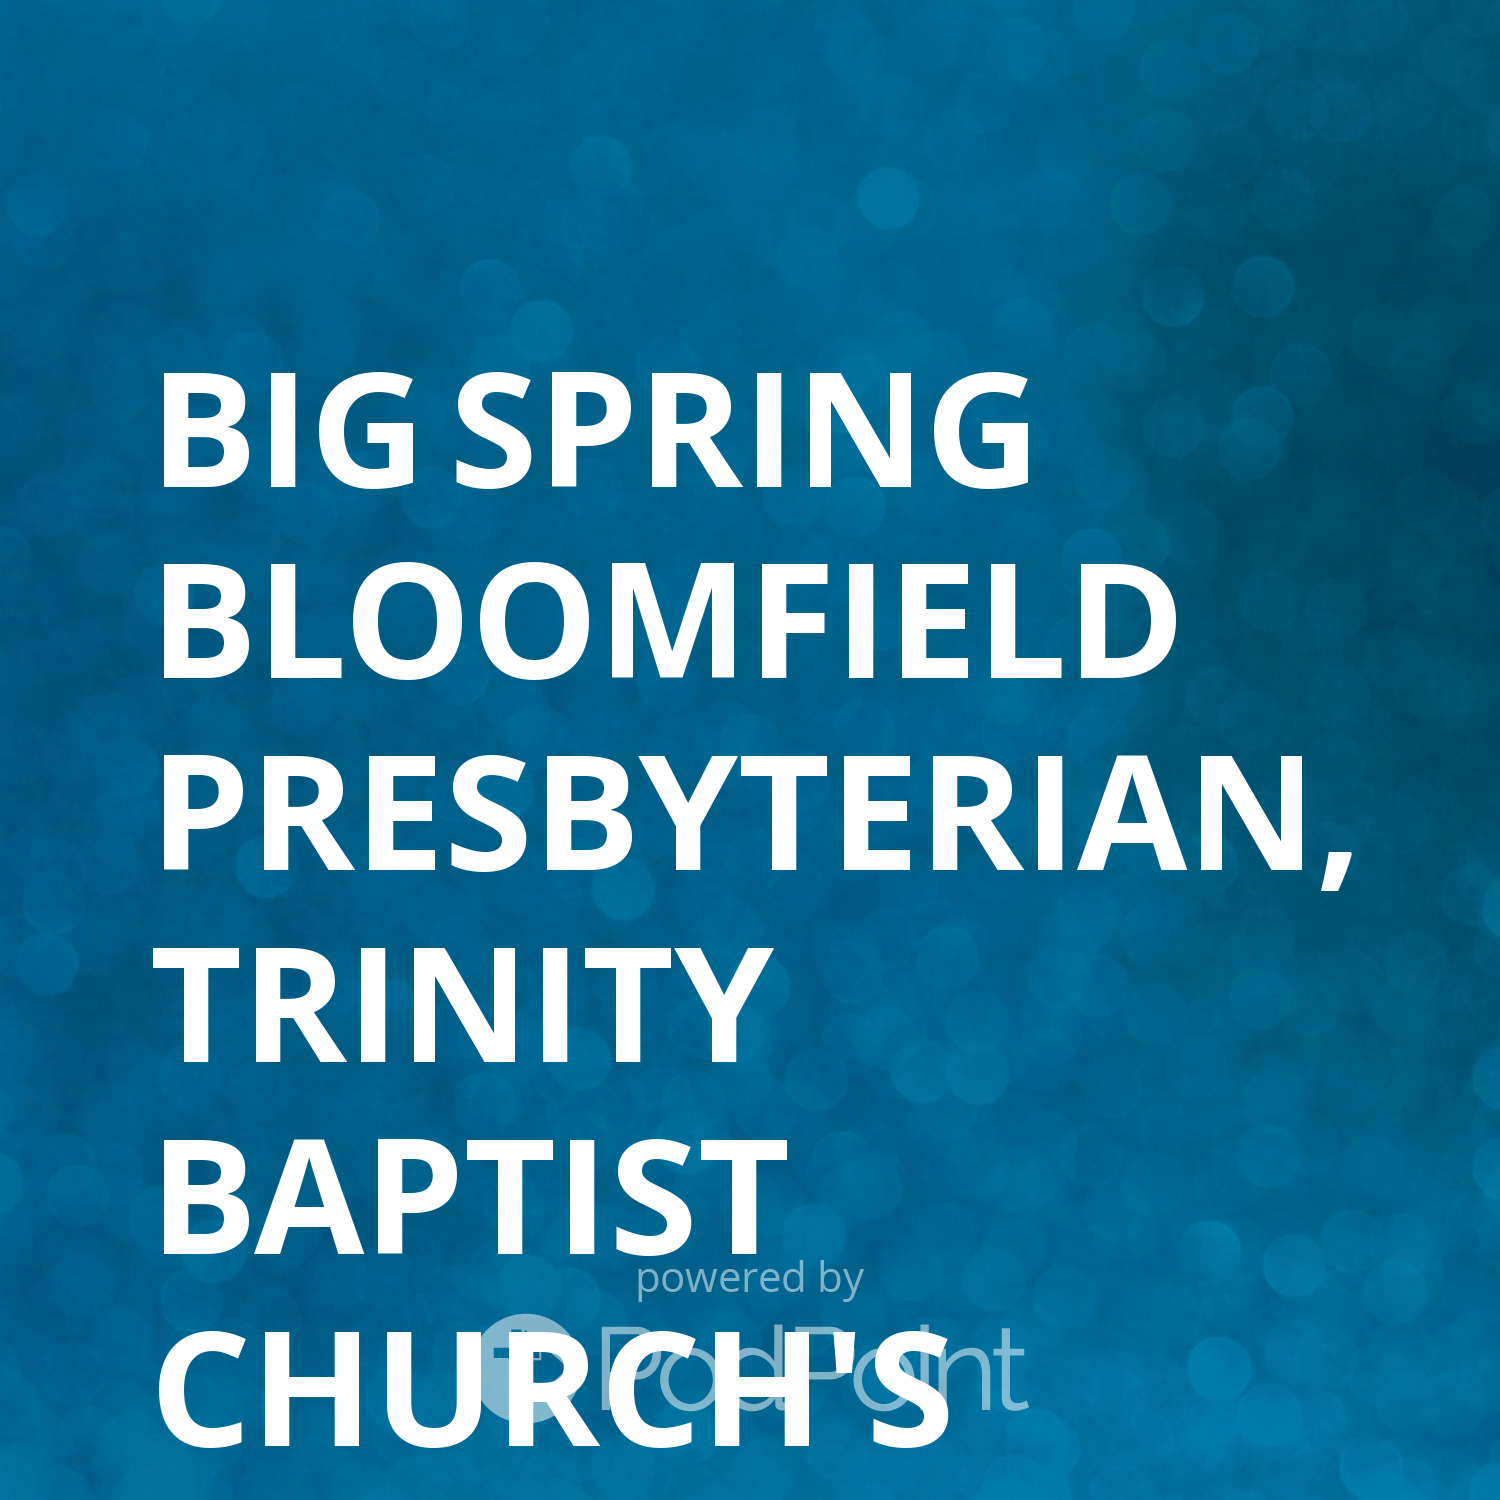 Big Spring Bloomfield Presbyterian, Trinity Baptist Church's Podcast